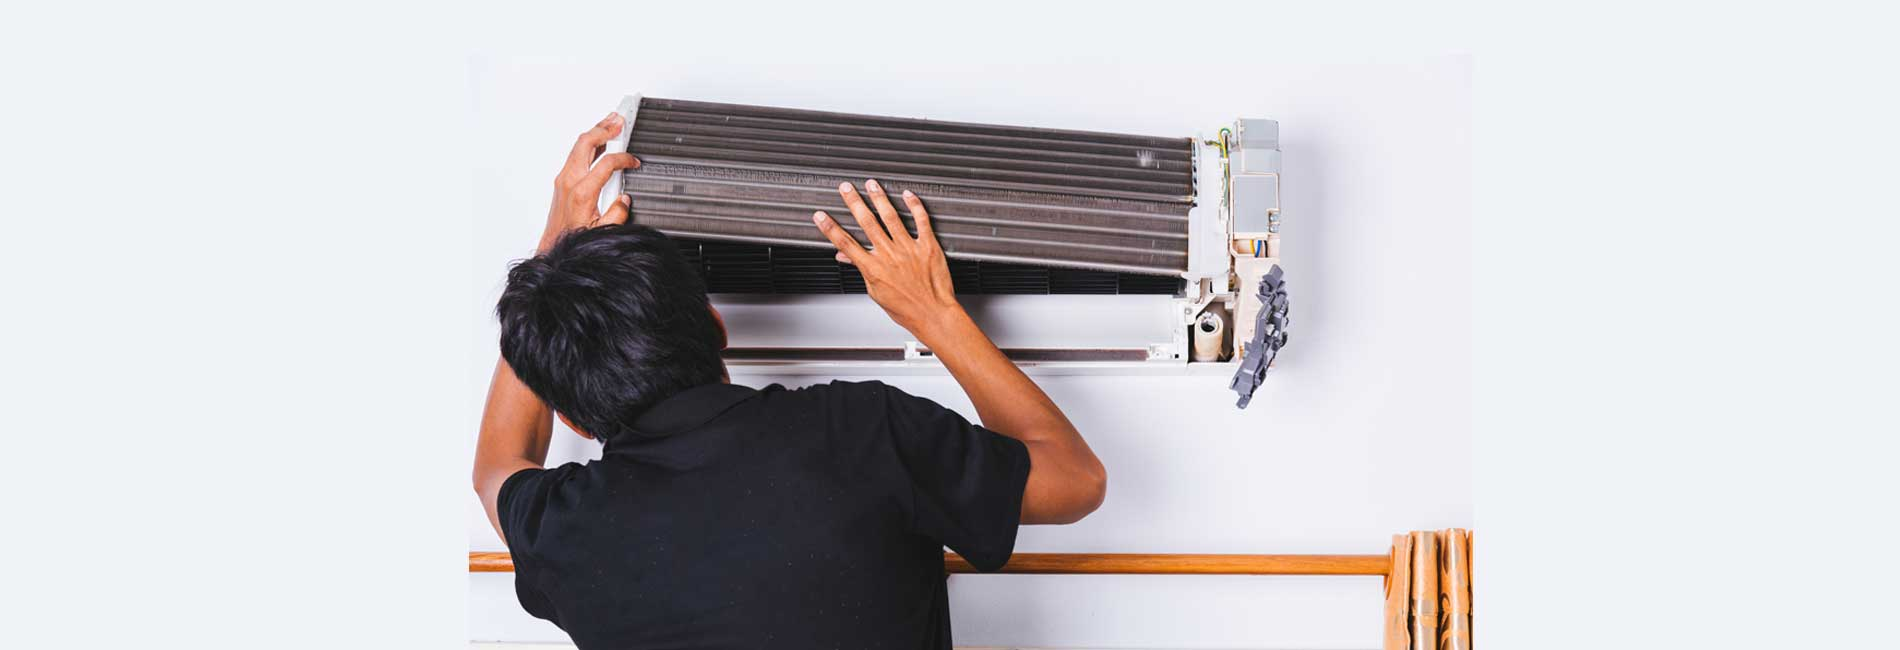 Air Condition Service in Velappanchavadi